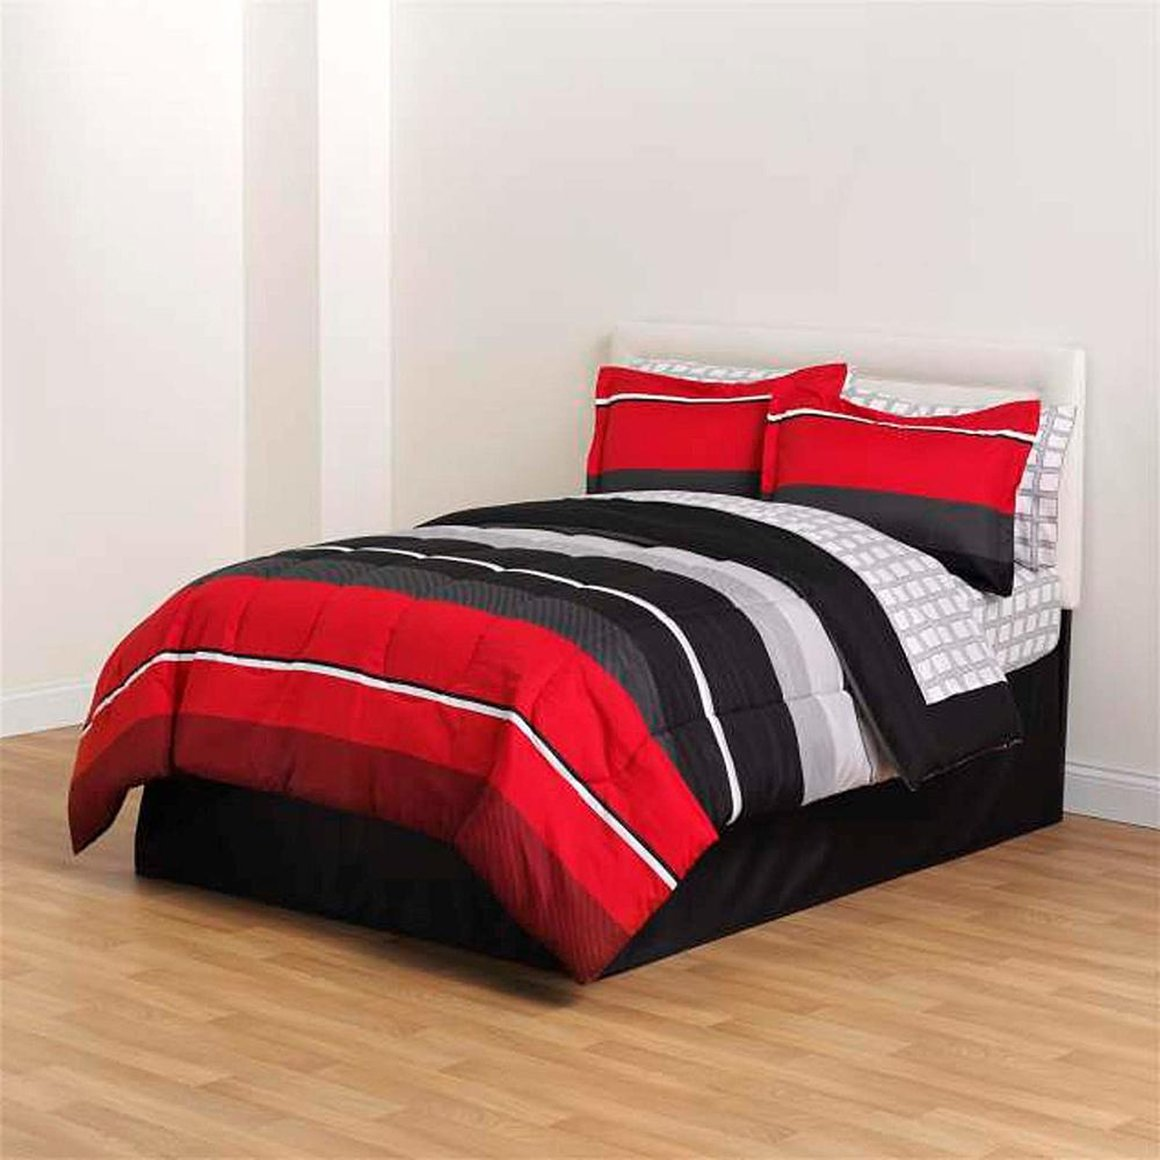 amazoncom full comforter set black red gray white rugby boys stripe complete bedding set 8 piece bed in a bag home u0026 kitchen